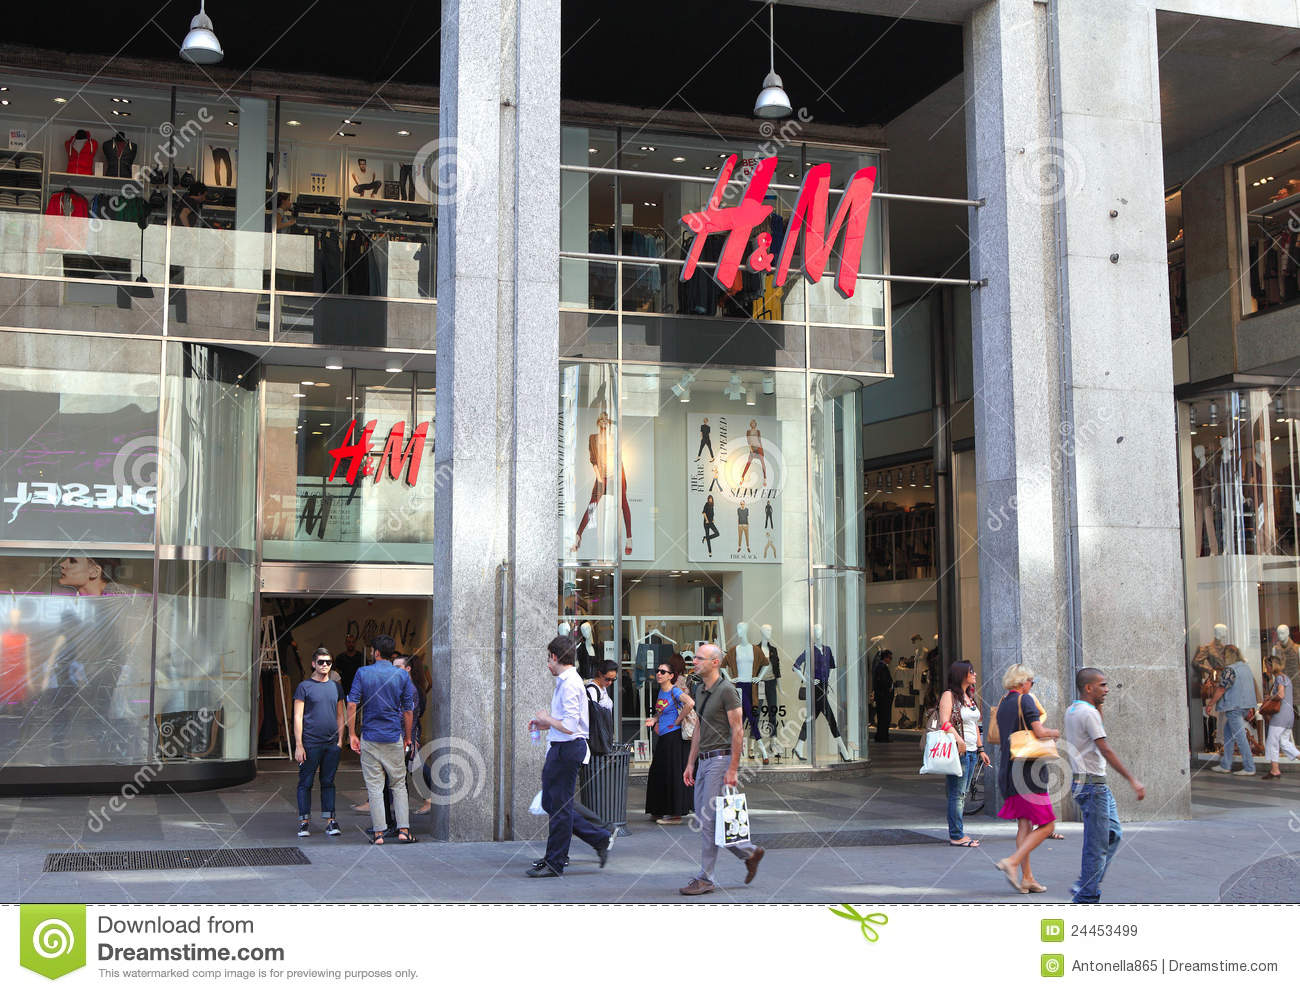 Hennes & Mauritz AB (H&M) designs and retails fashions for women, men, teens, and children. The Company sells a variety trendy, sporty, and classic garments in addition to accessories such as.